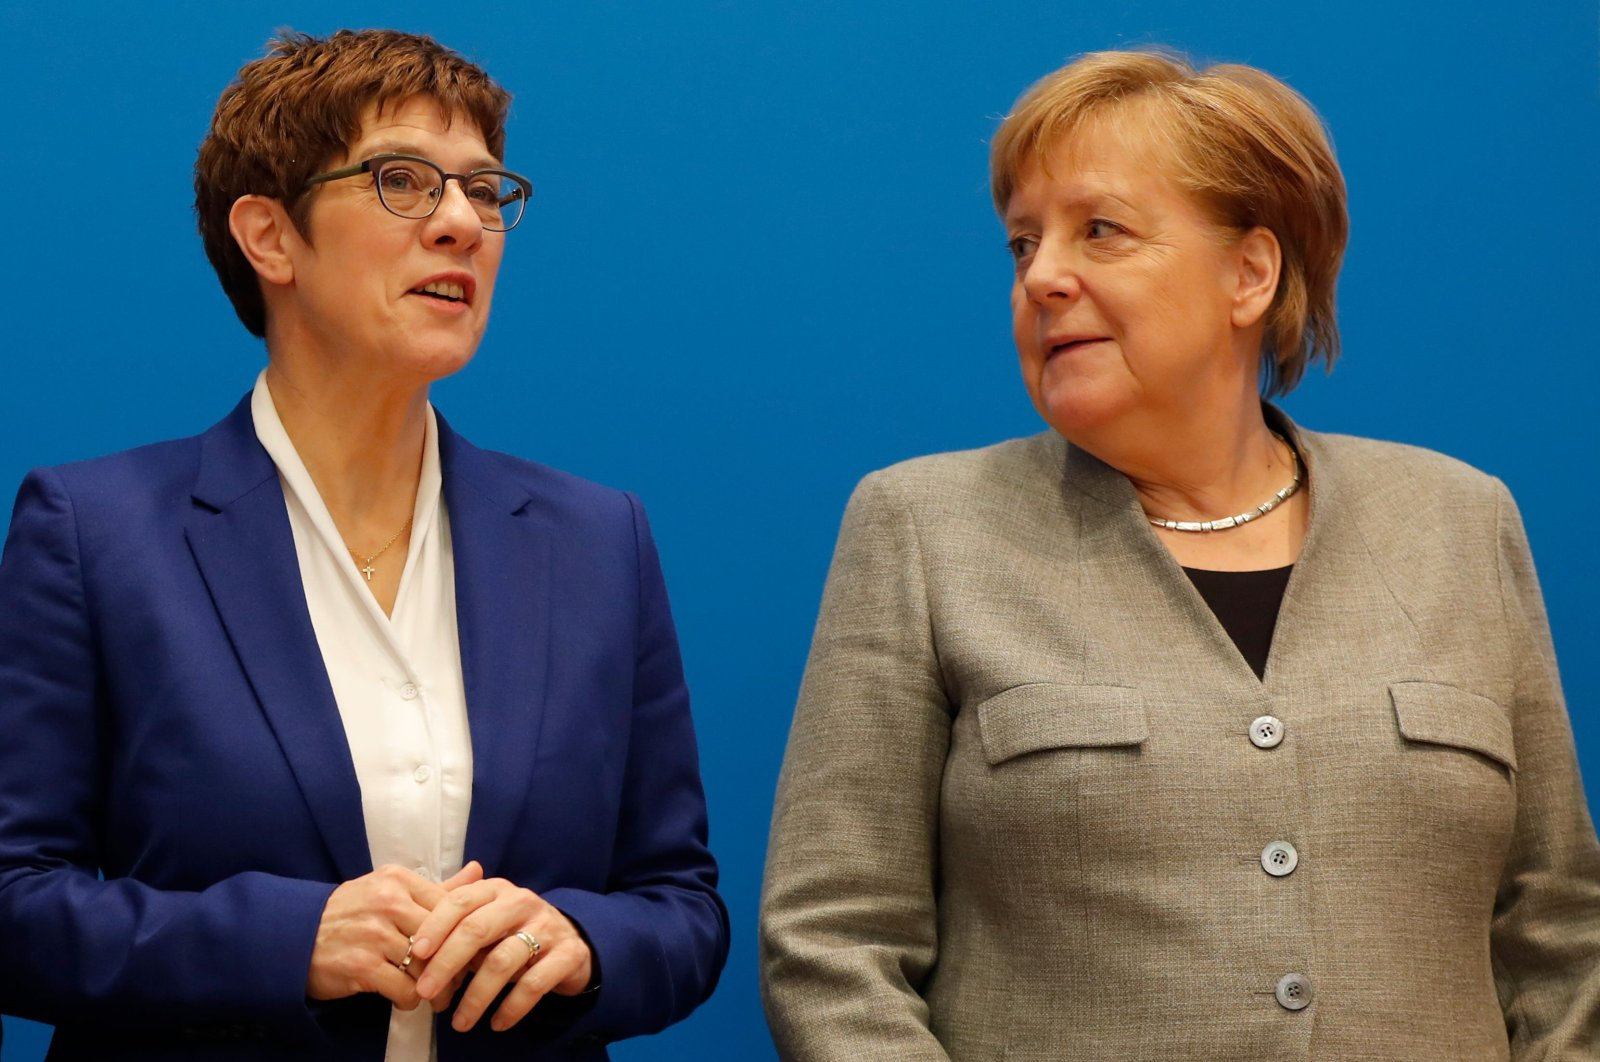 Annegret Kramp-Karrenbauer (L), leader of Germany's conservative CDU party, and German Chancellor Angela Merkel pose during a meeting with their party's leadership, Berlin, Feb. 10, 2020. (AFP Photo)